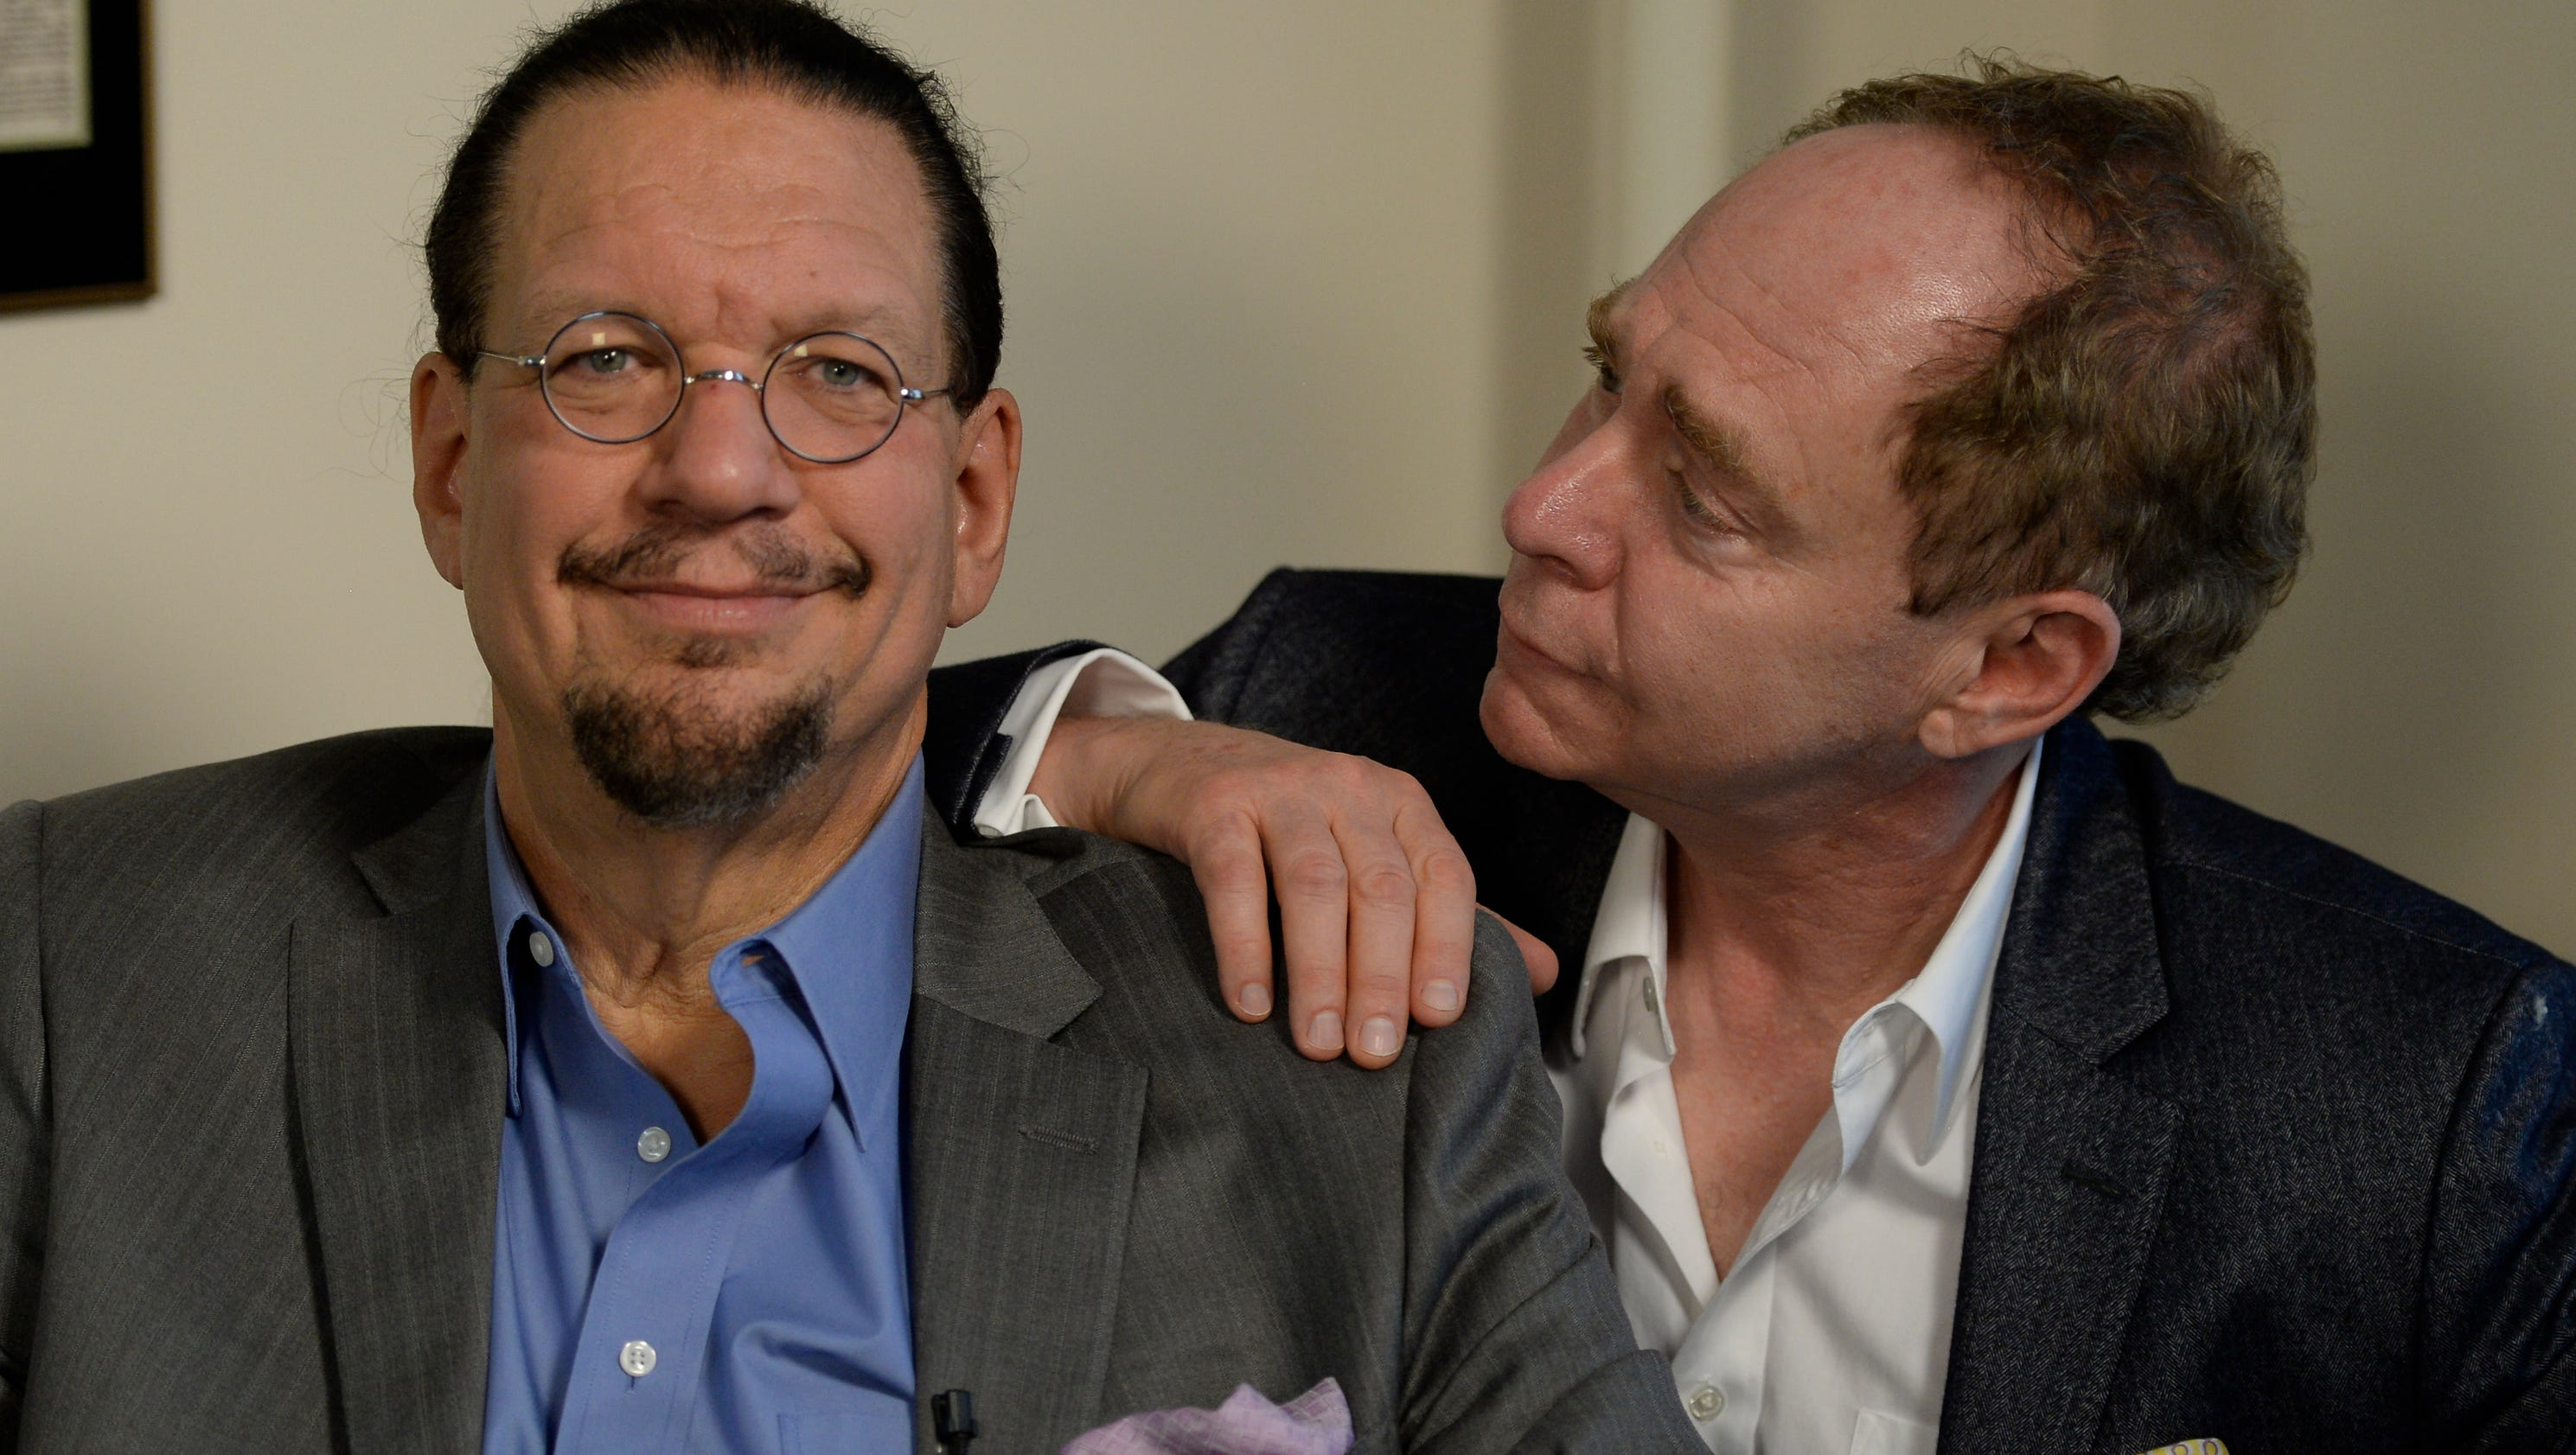 penn and teller dating trick Penn and teller are arguably the most famous magicians in the world, and this performance is one of their most memorable.